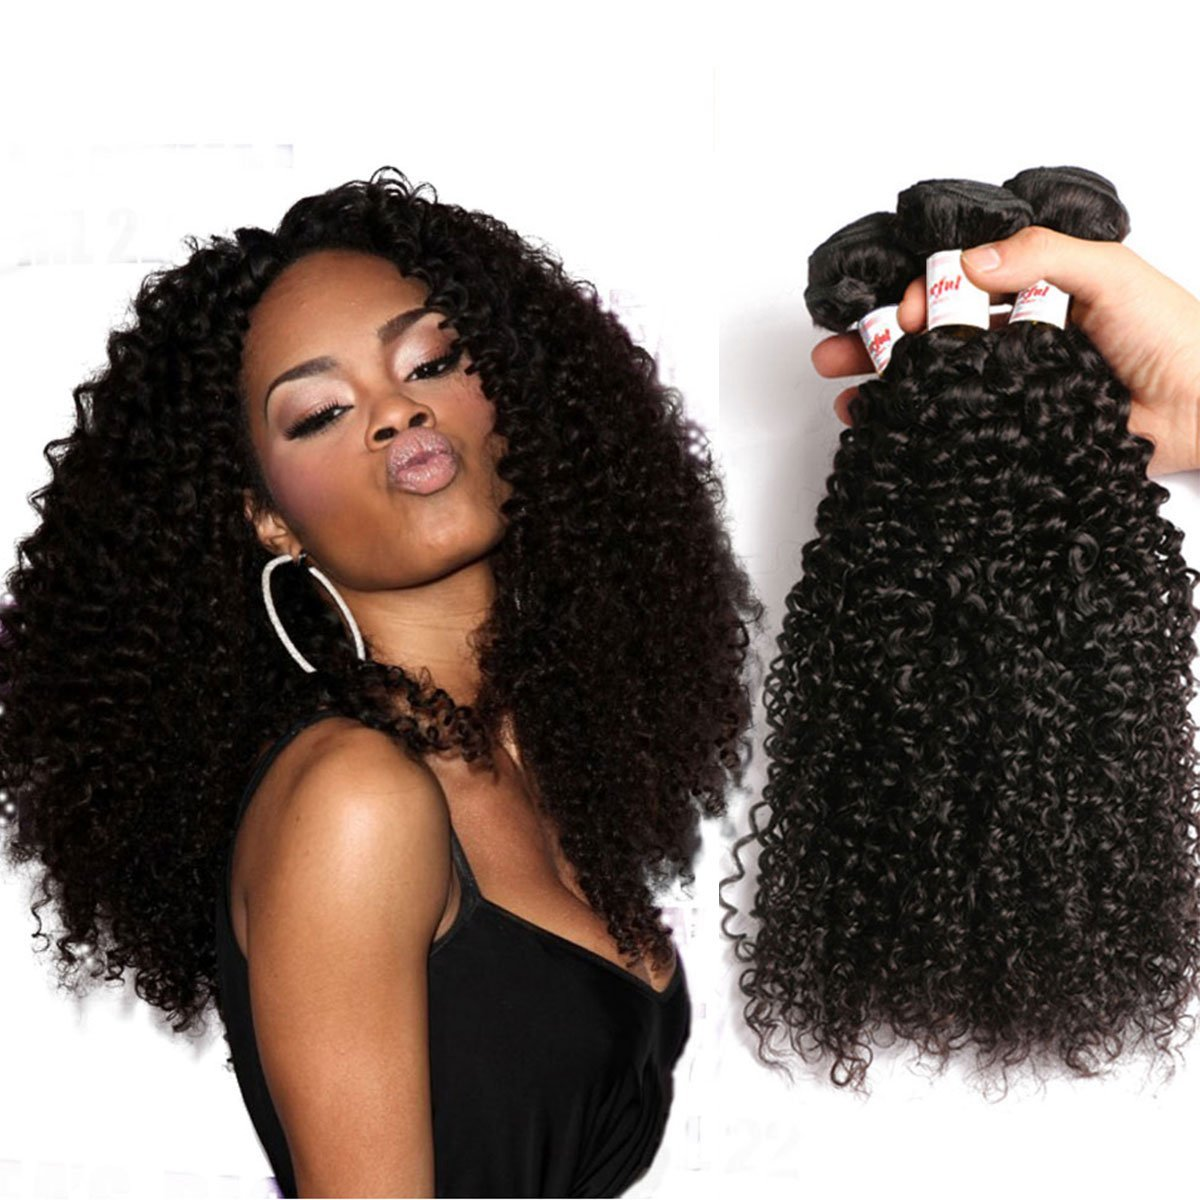 Tuneful 14 16 18inches Brazilian Curly Virgin Hair 3 Bundles Kinky Curly Virgin Hair Weave 100% Unprocessed Brazilian Remy Human Hair Extensions Natural Black Color